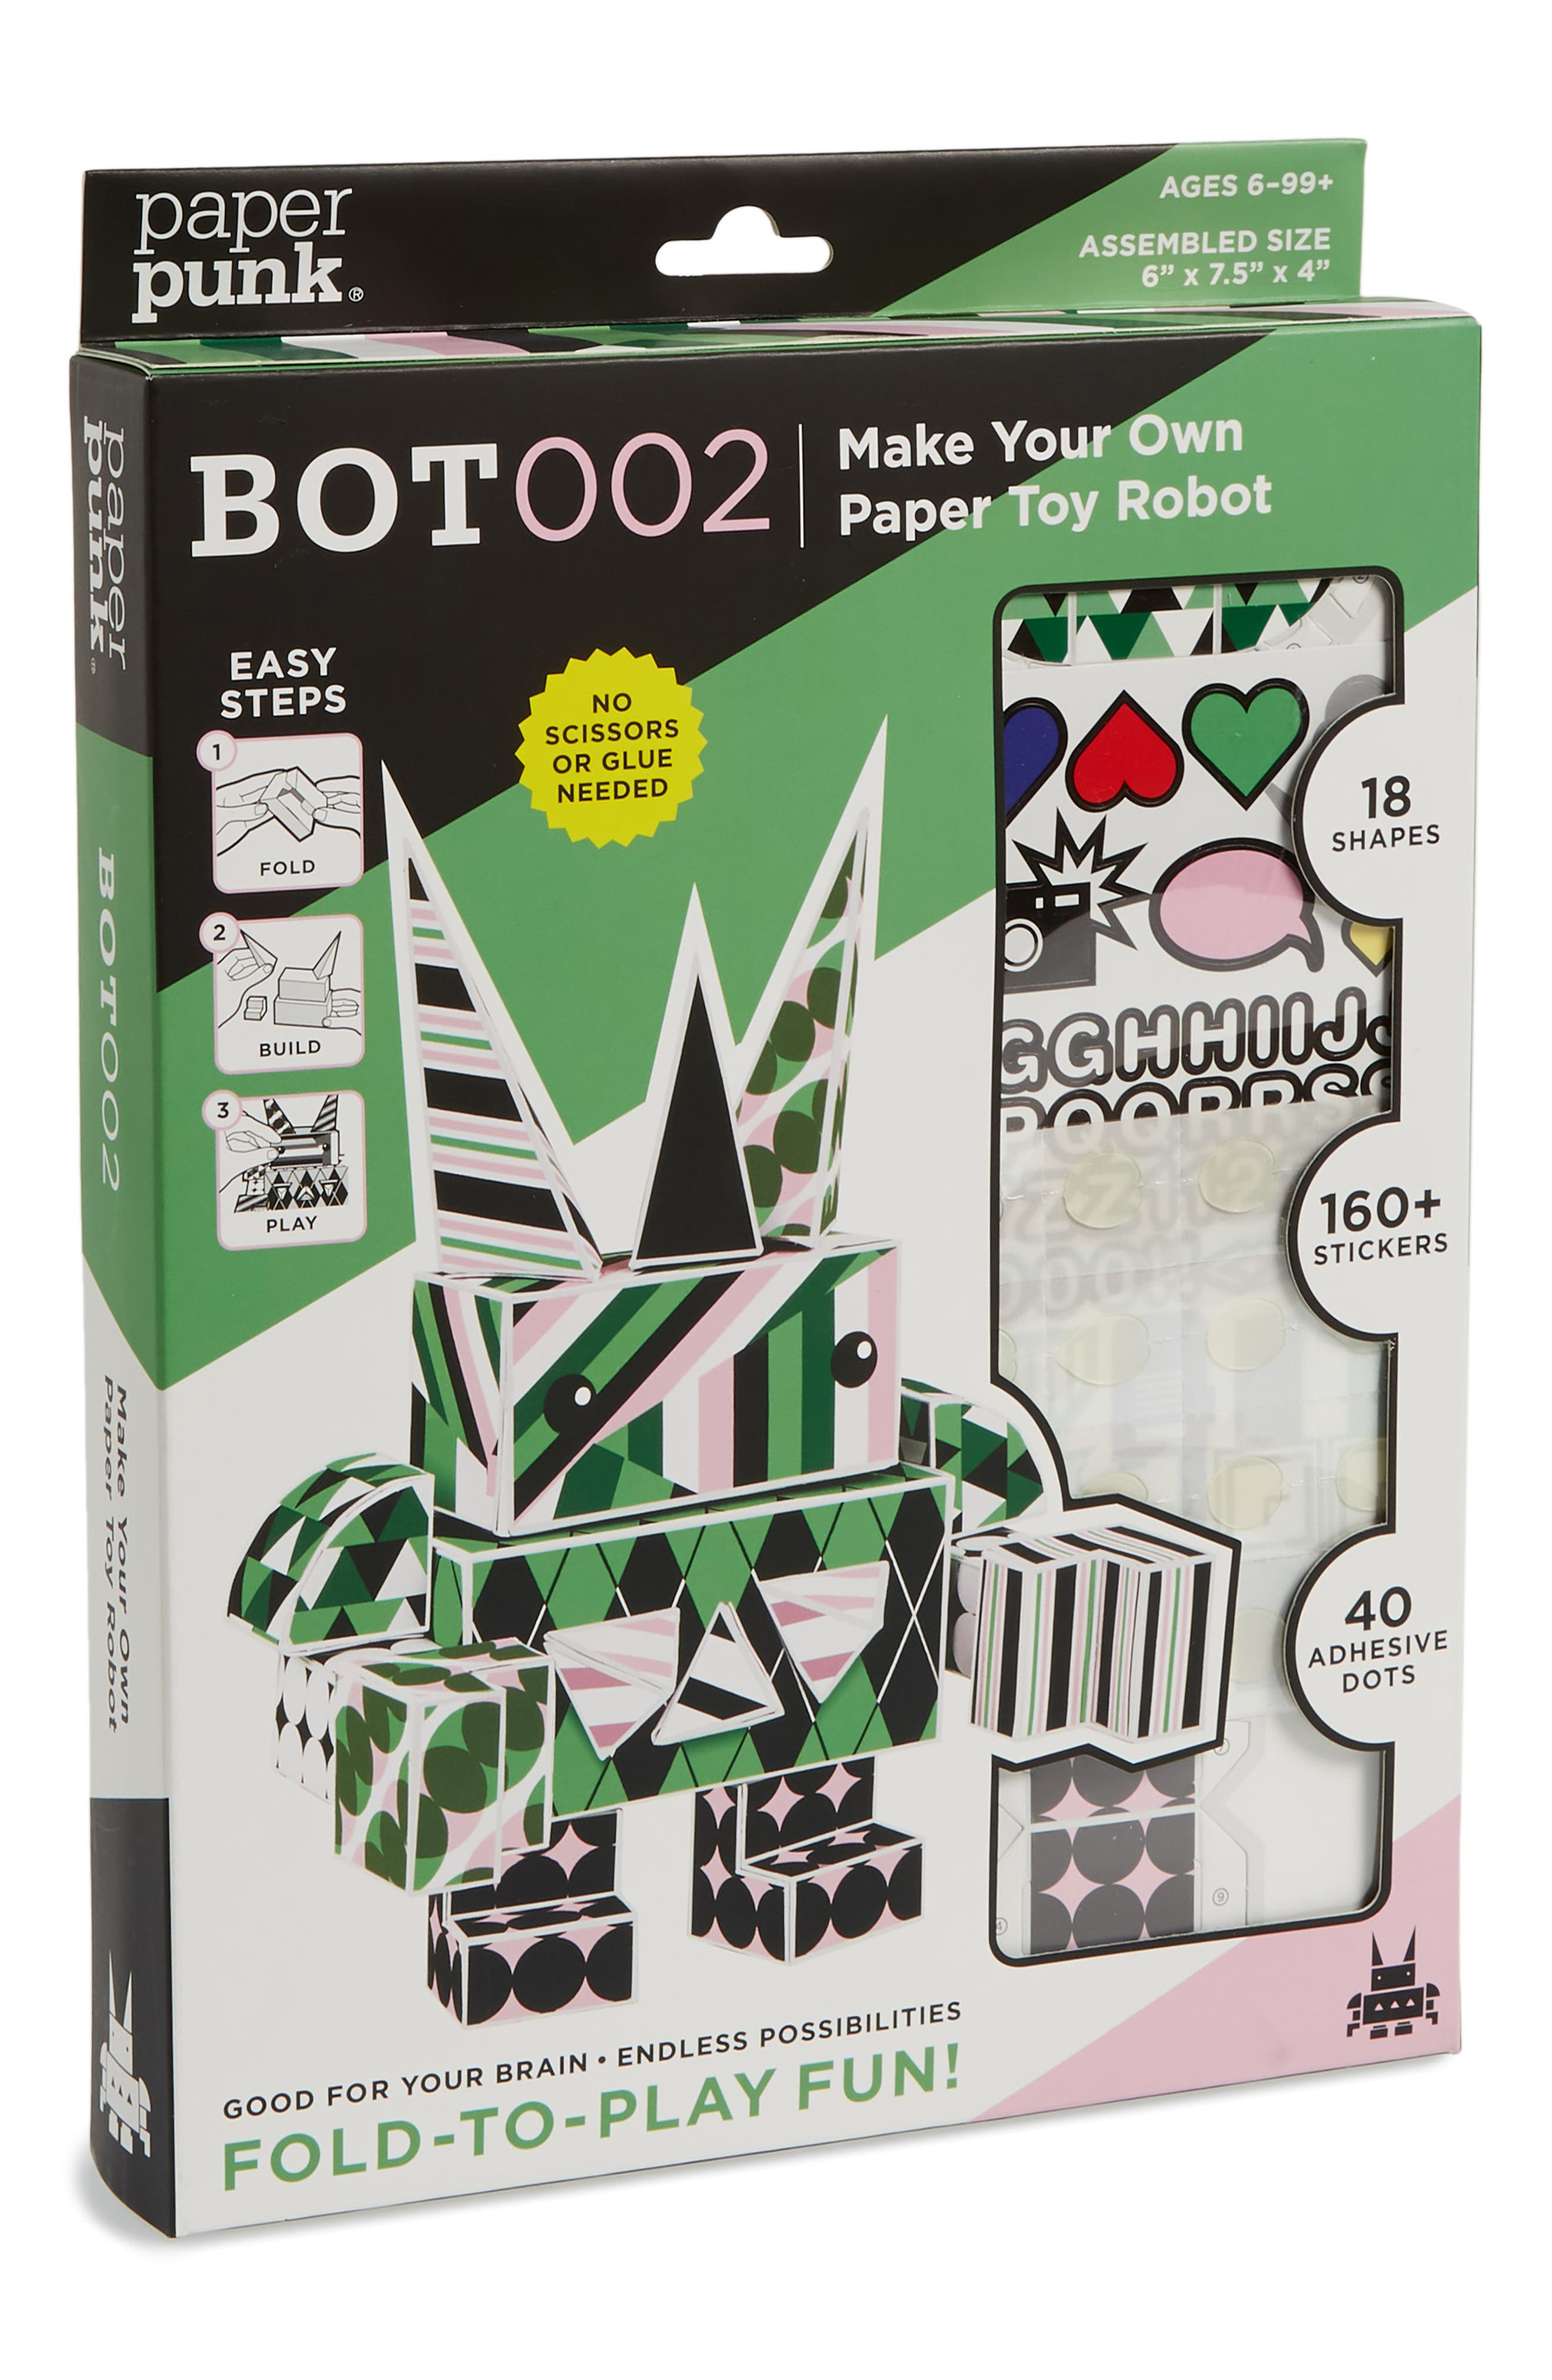 Bot002 Make Your Own Paper Toy Robot Kit,                         Main,                         color,